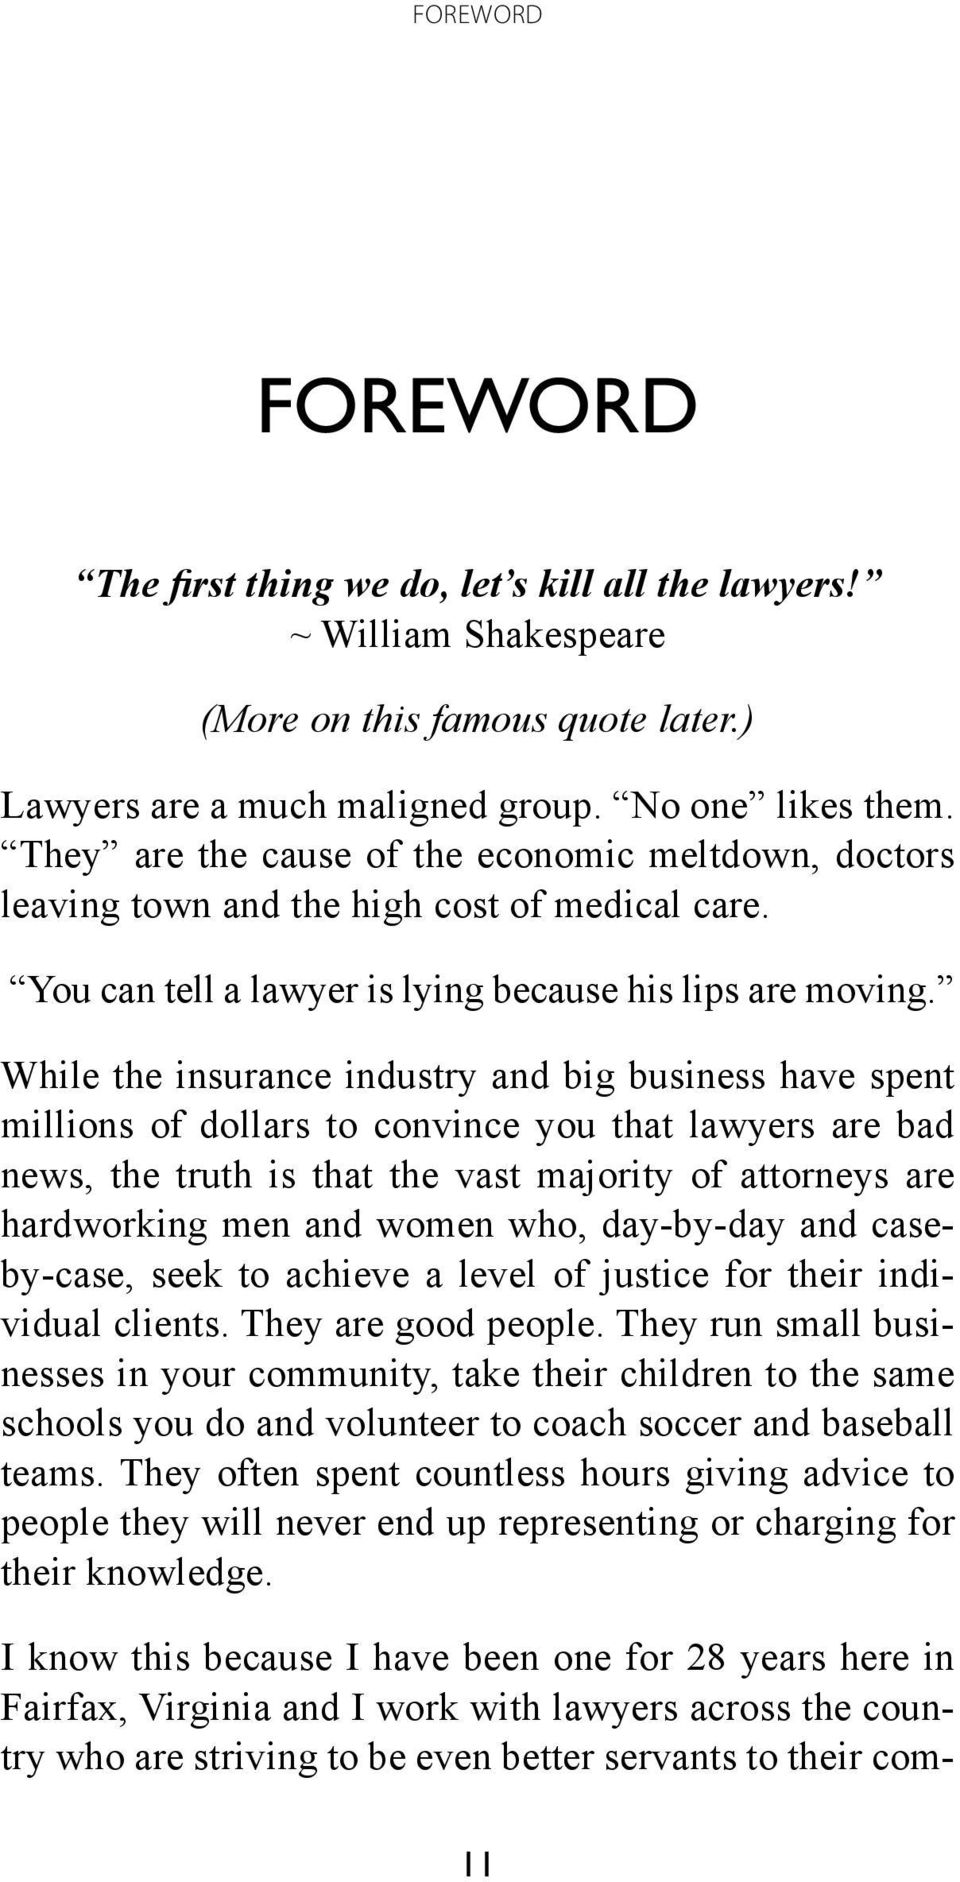 While the insurance industry and big business have spent millions of dollars to convince you that lawyers are bad news, the truth is that the vast majority of attorneys are hardworking men and women